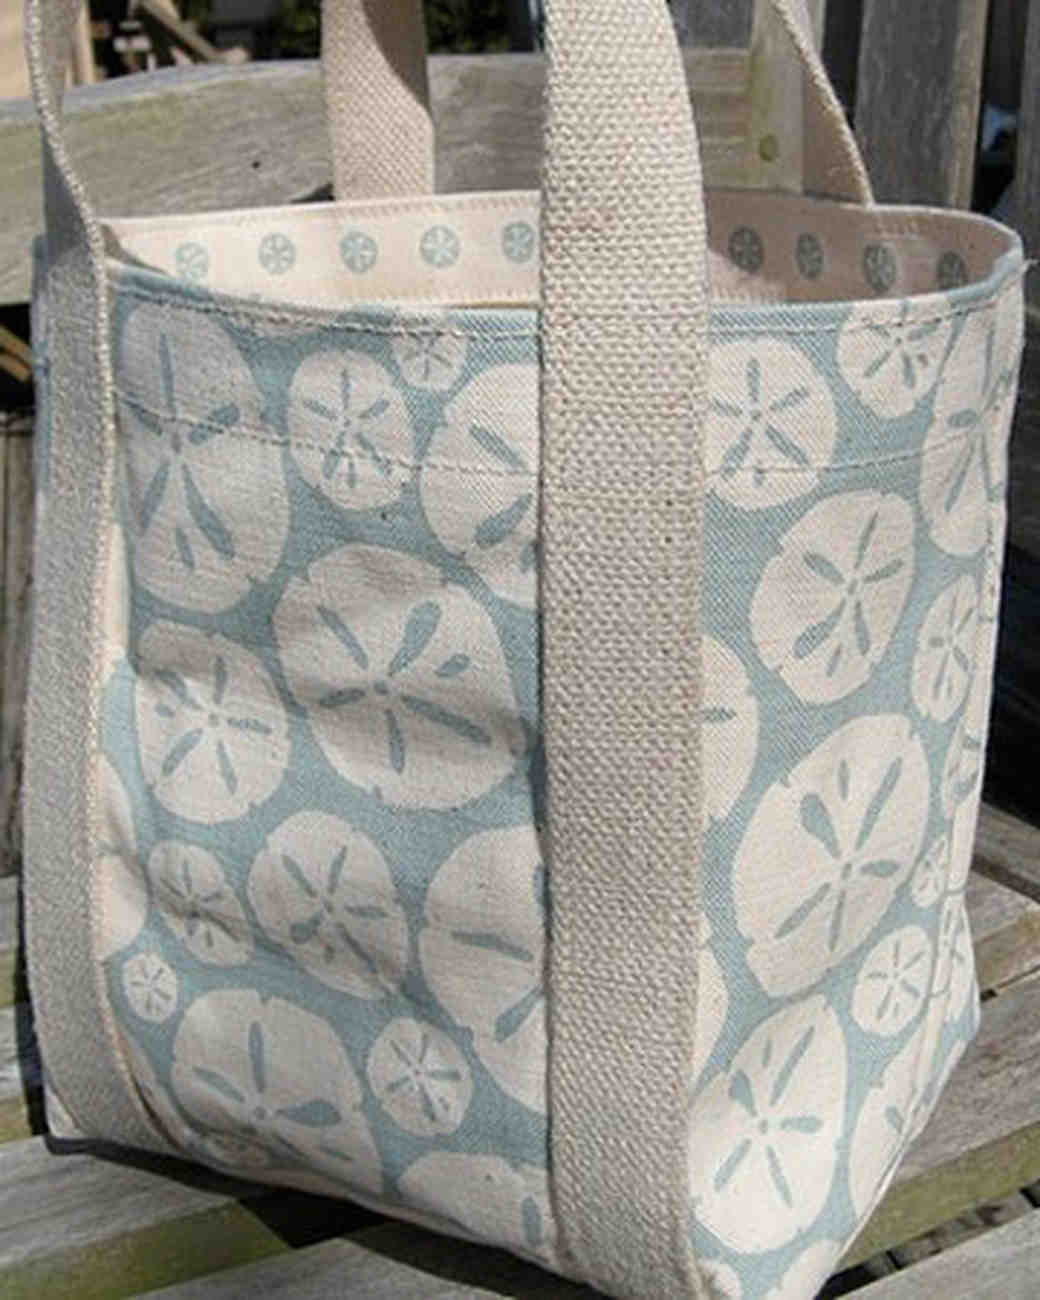 etsy_willywaw_sand_dollar_tote.jpg